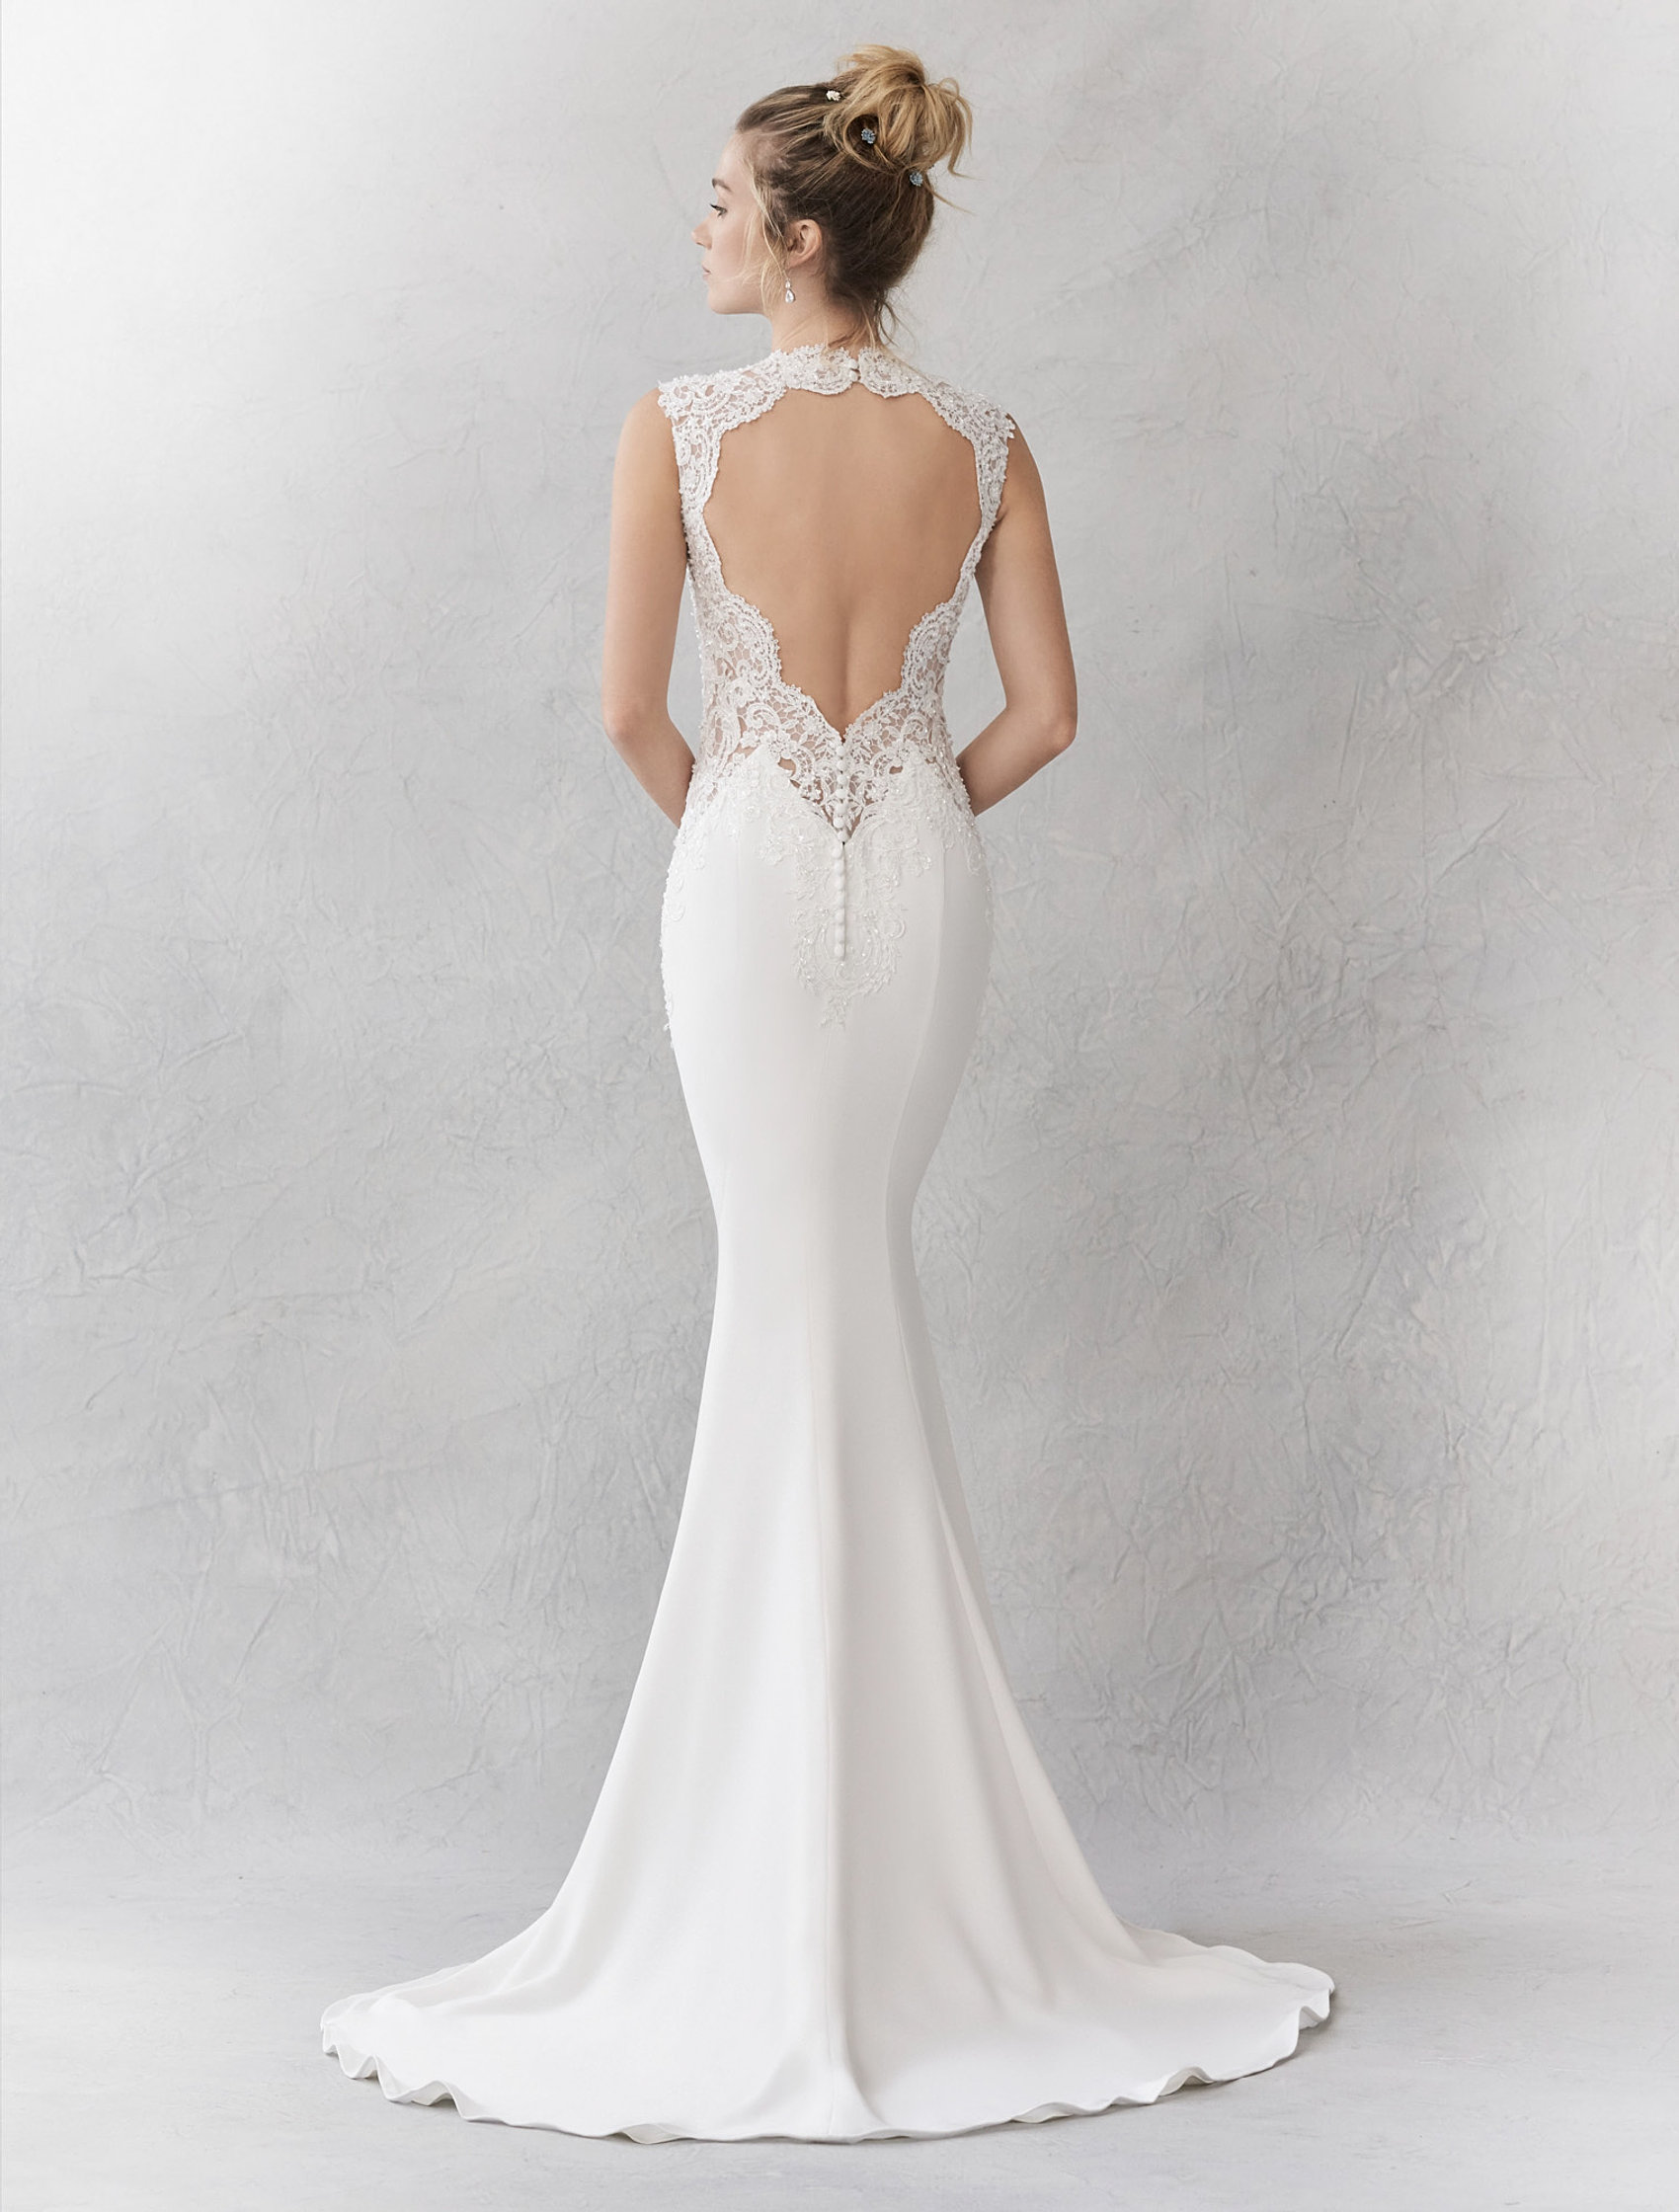 Soft Crepe Gown With Illusion Panels Beaded Straps And Statement Back